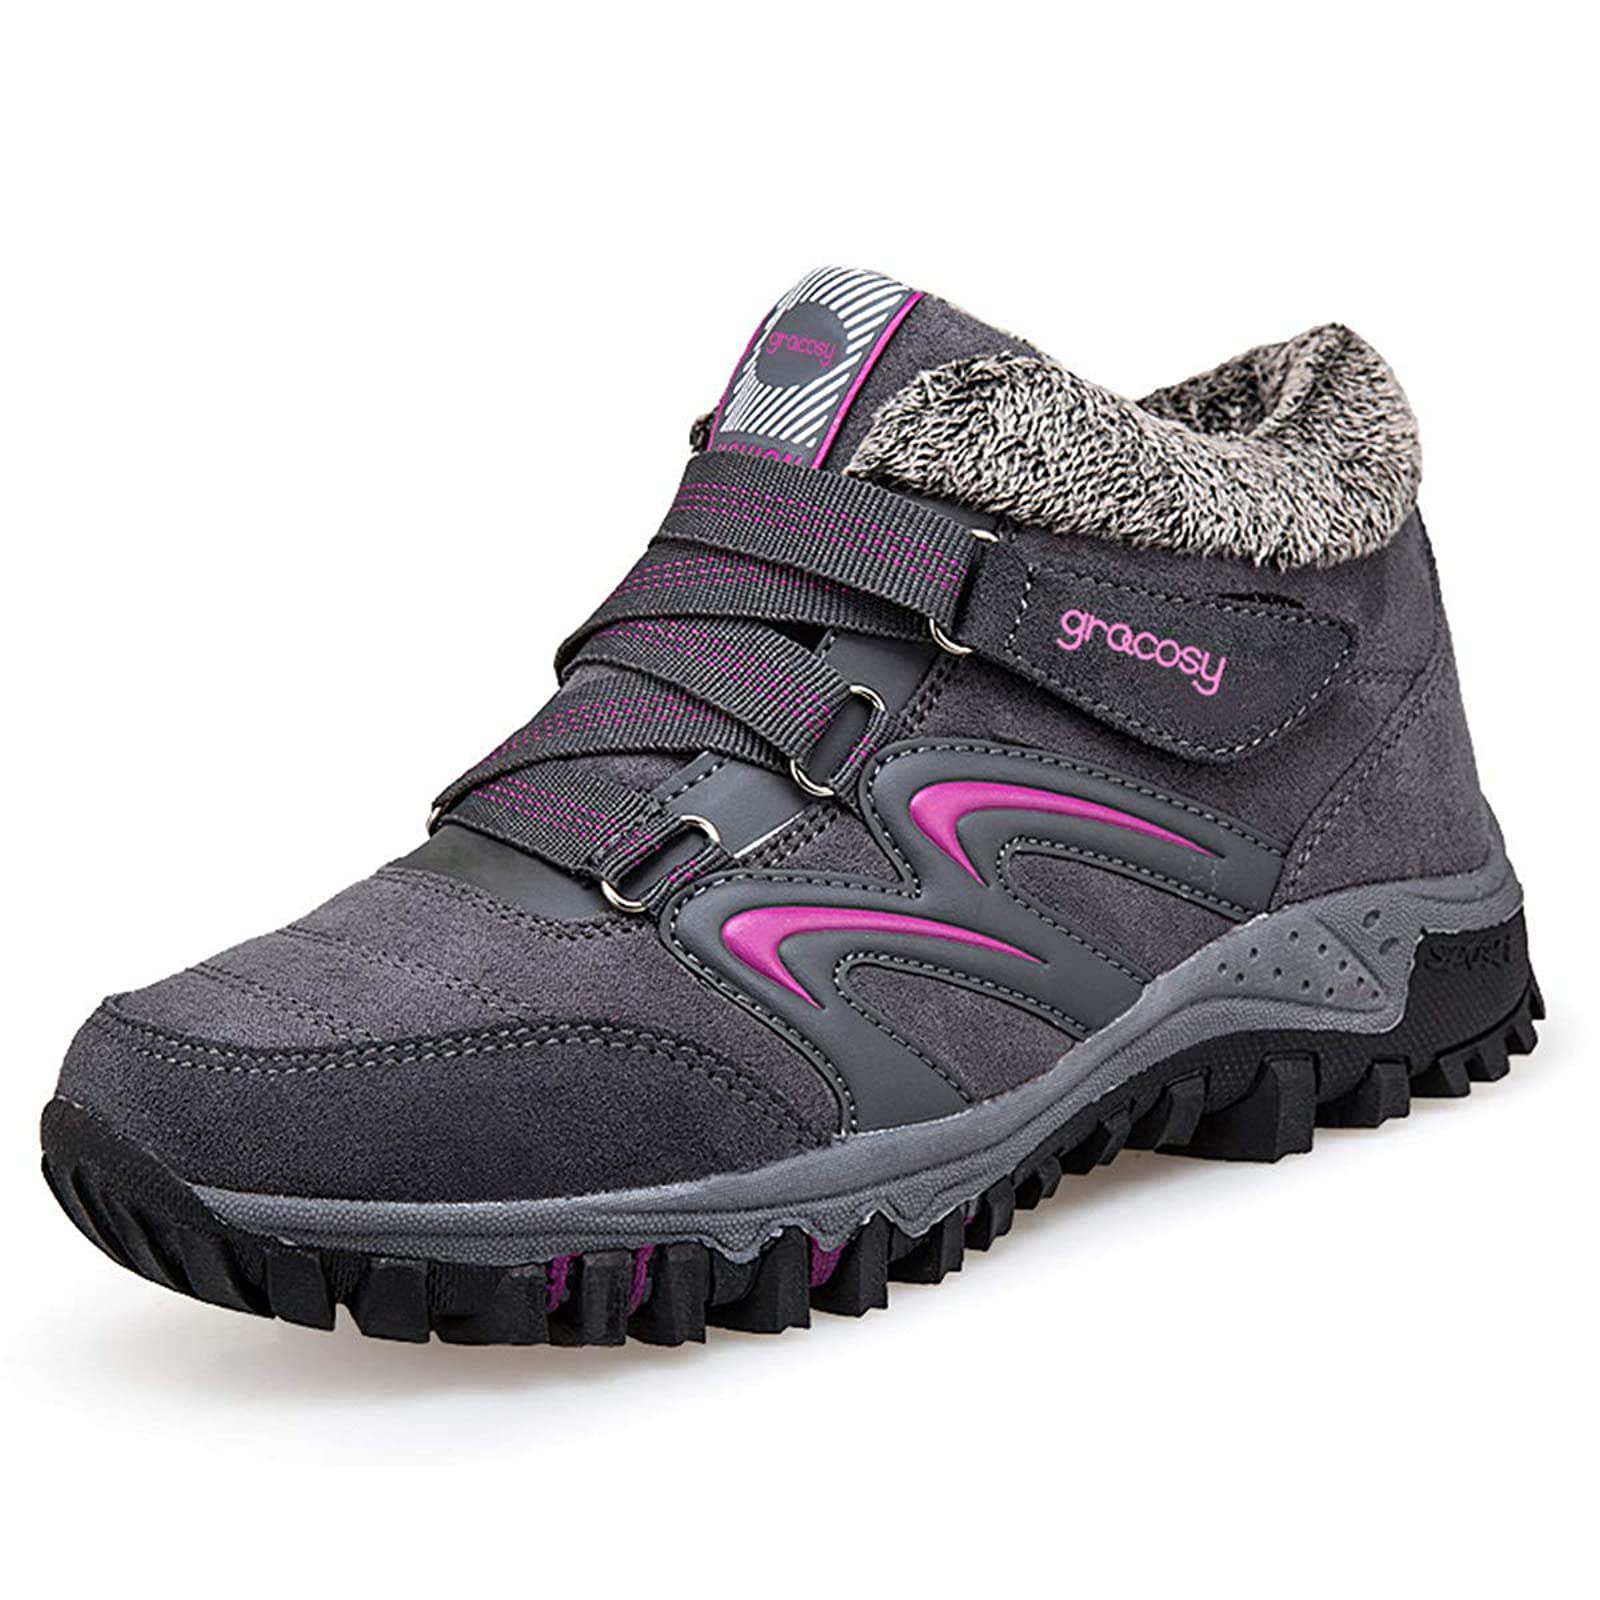 gracosy Women's Hiking Shoes High Top GRACOSYWERTY21416 - 1